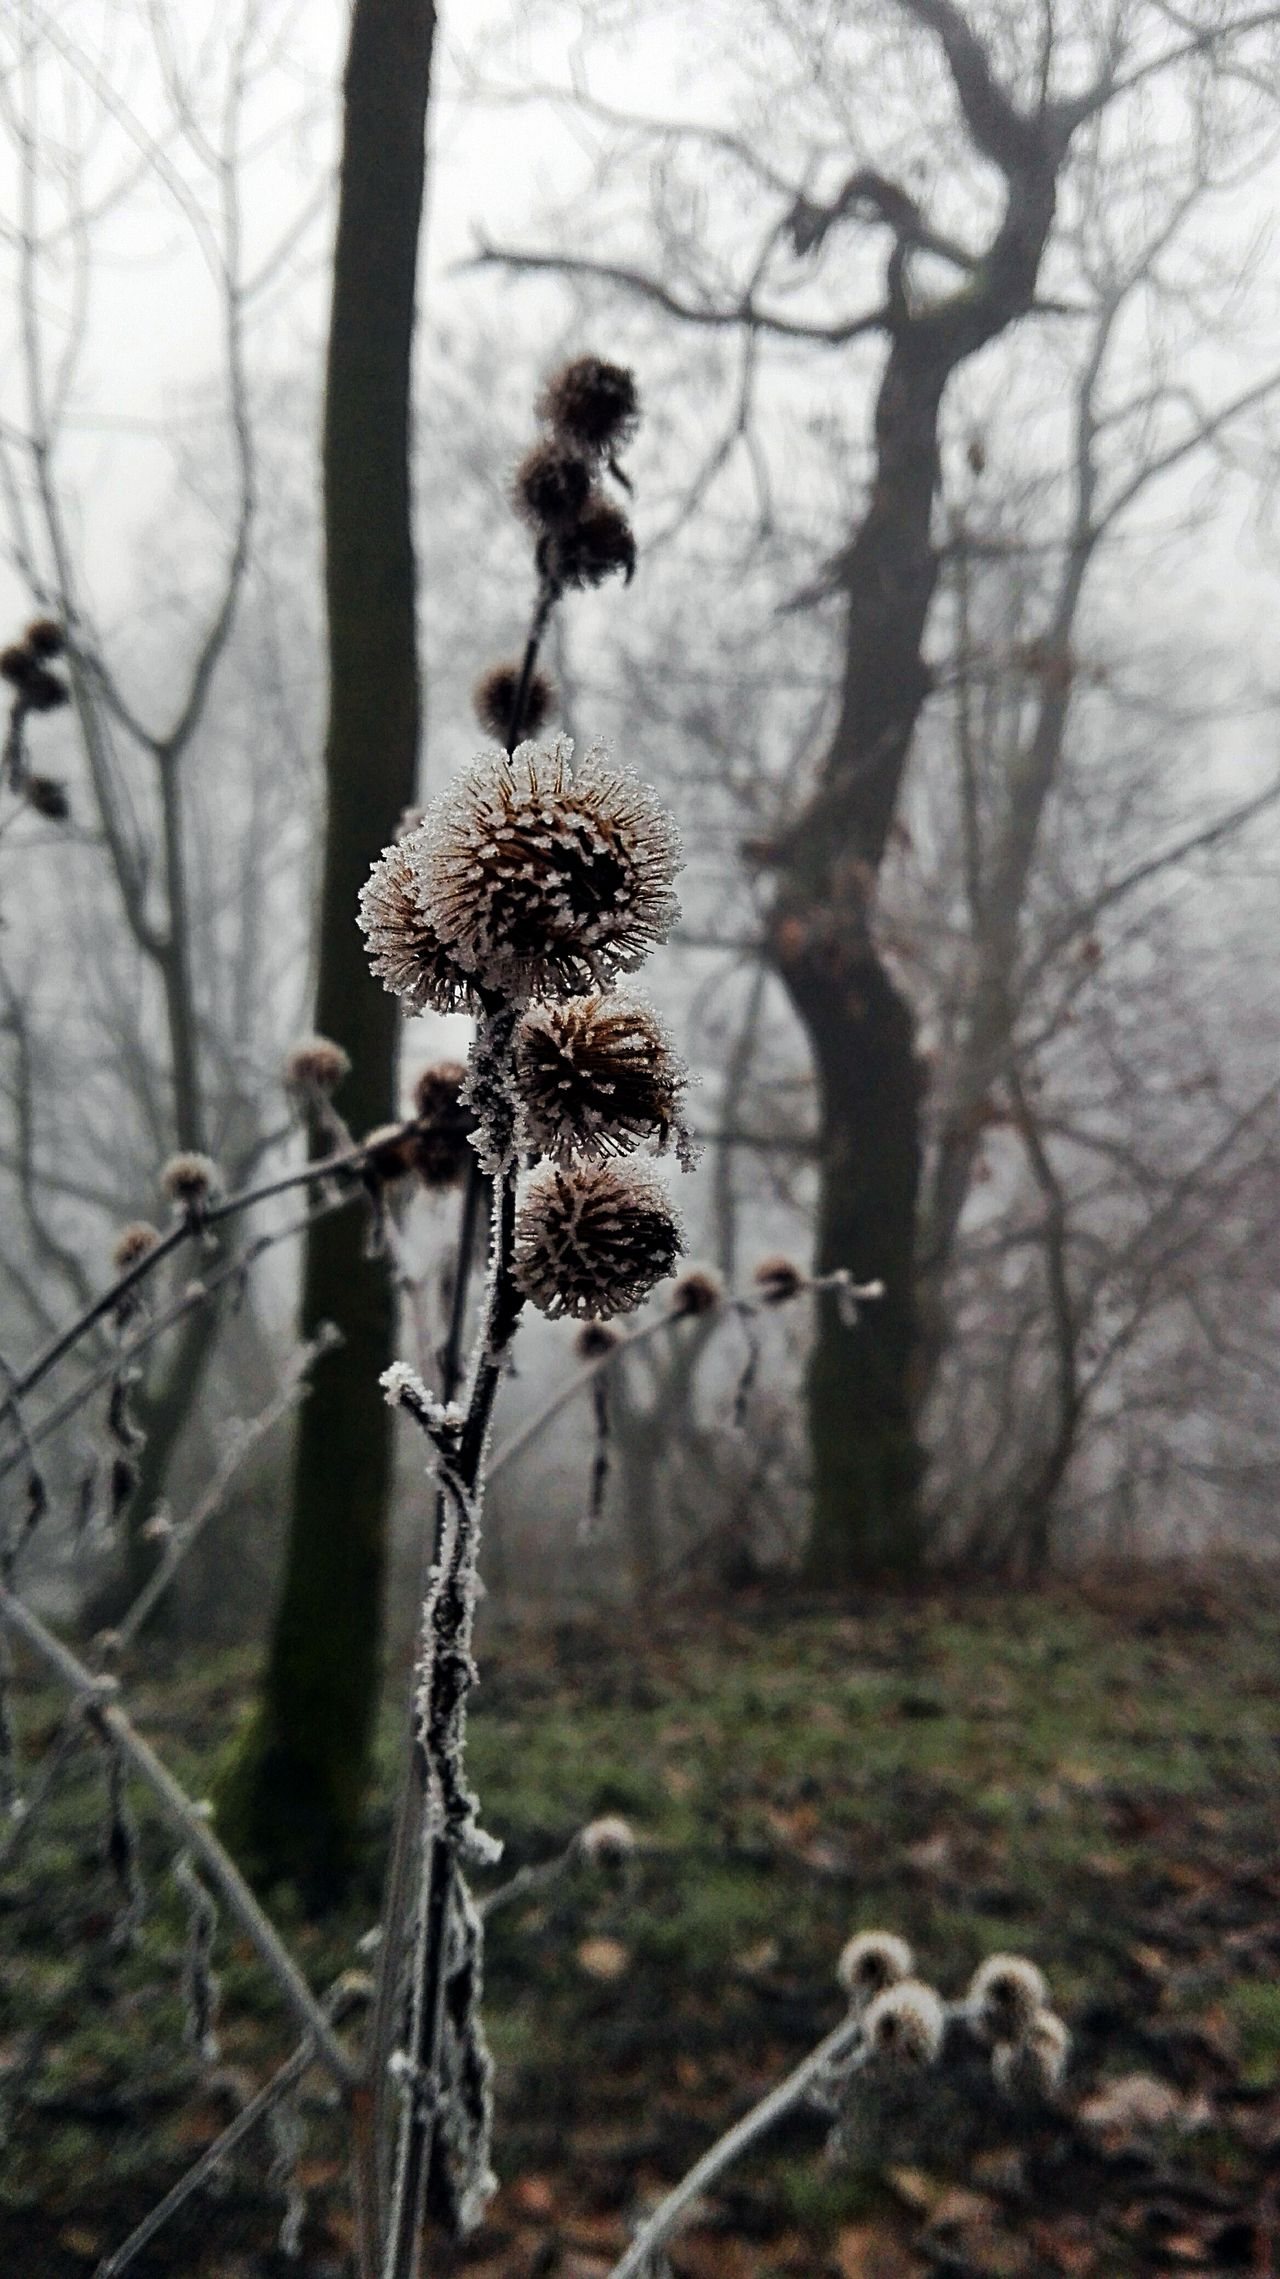 Winter Wintertime Nature Beauty In Nature Cold Days Freezing Cold Forest Cold Morning Fog Foggy Morning Foggy Day Foggy Weather Mobile Photography Czech Nature in Rip Czech Republic